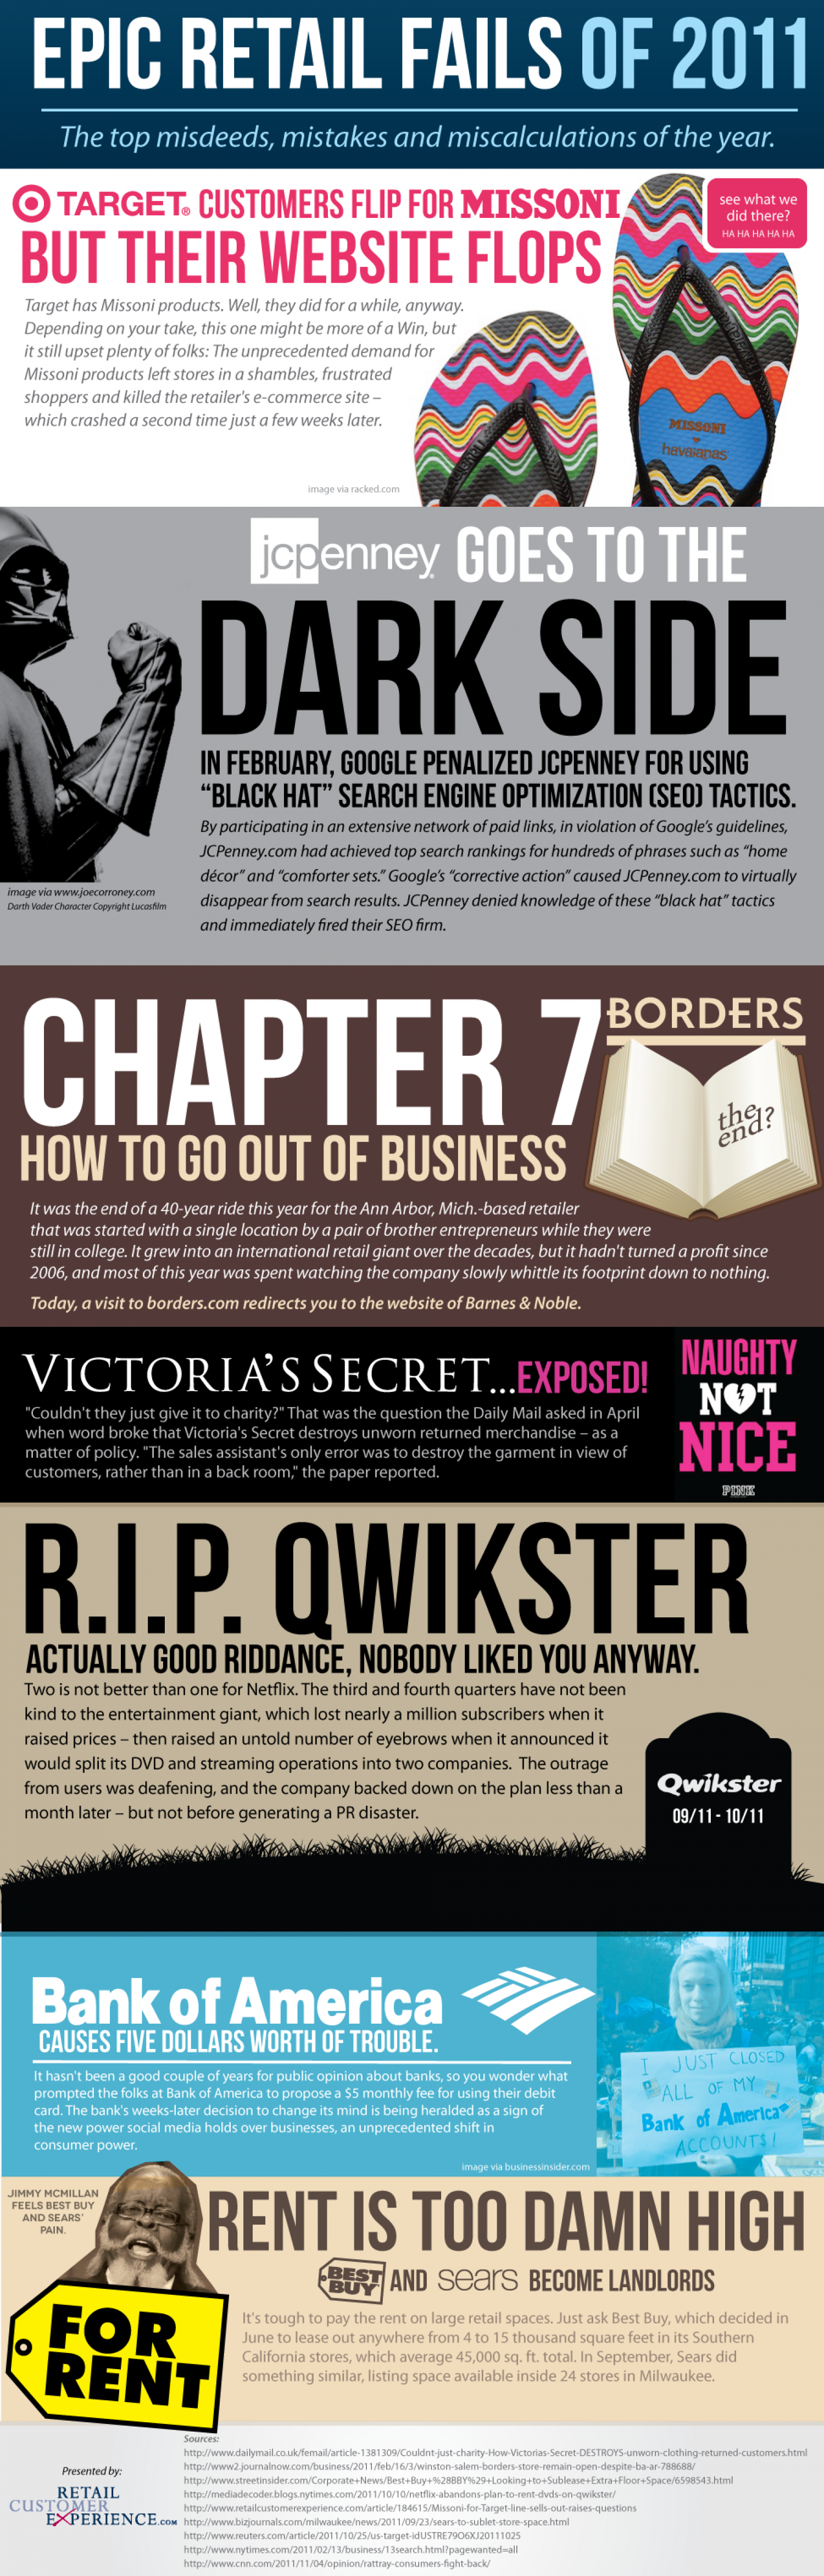 Epic Retail Fails of 2011 Infographic